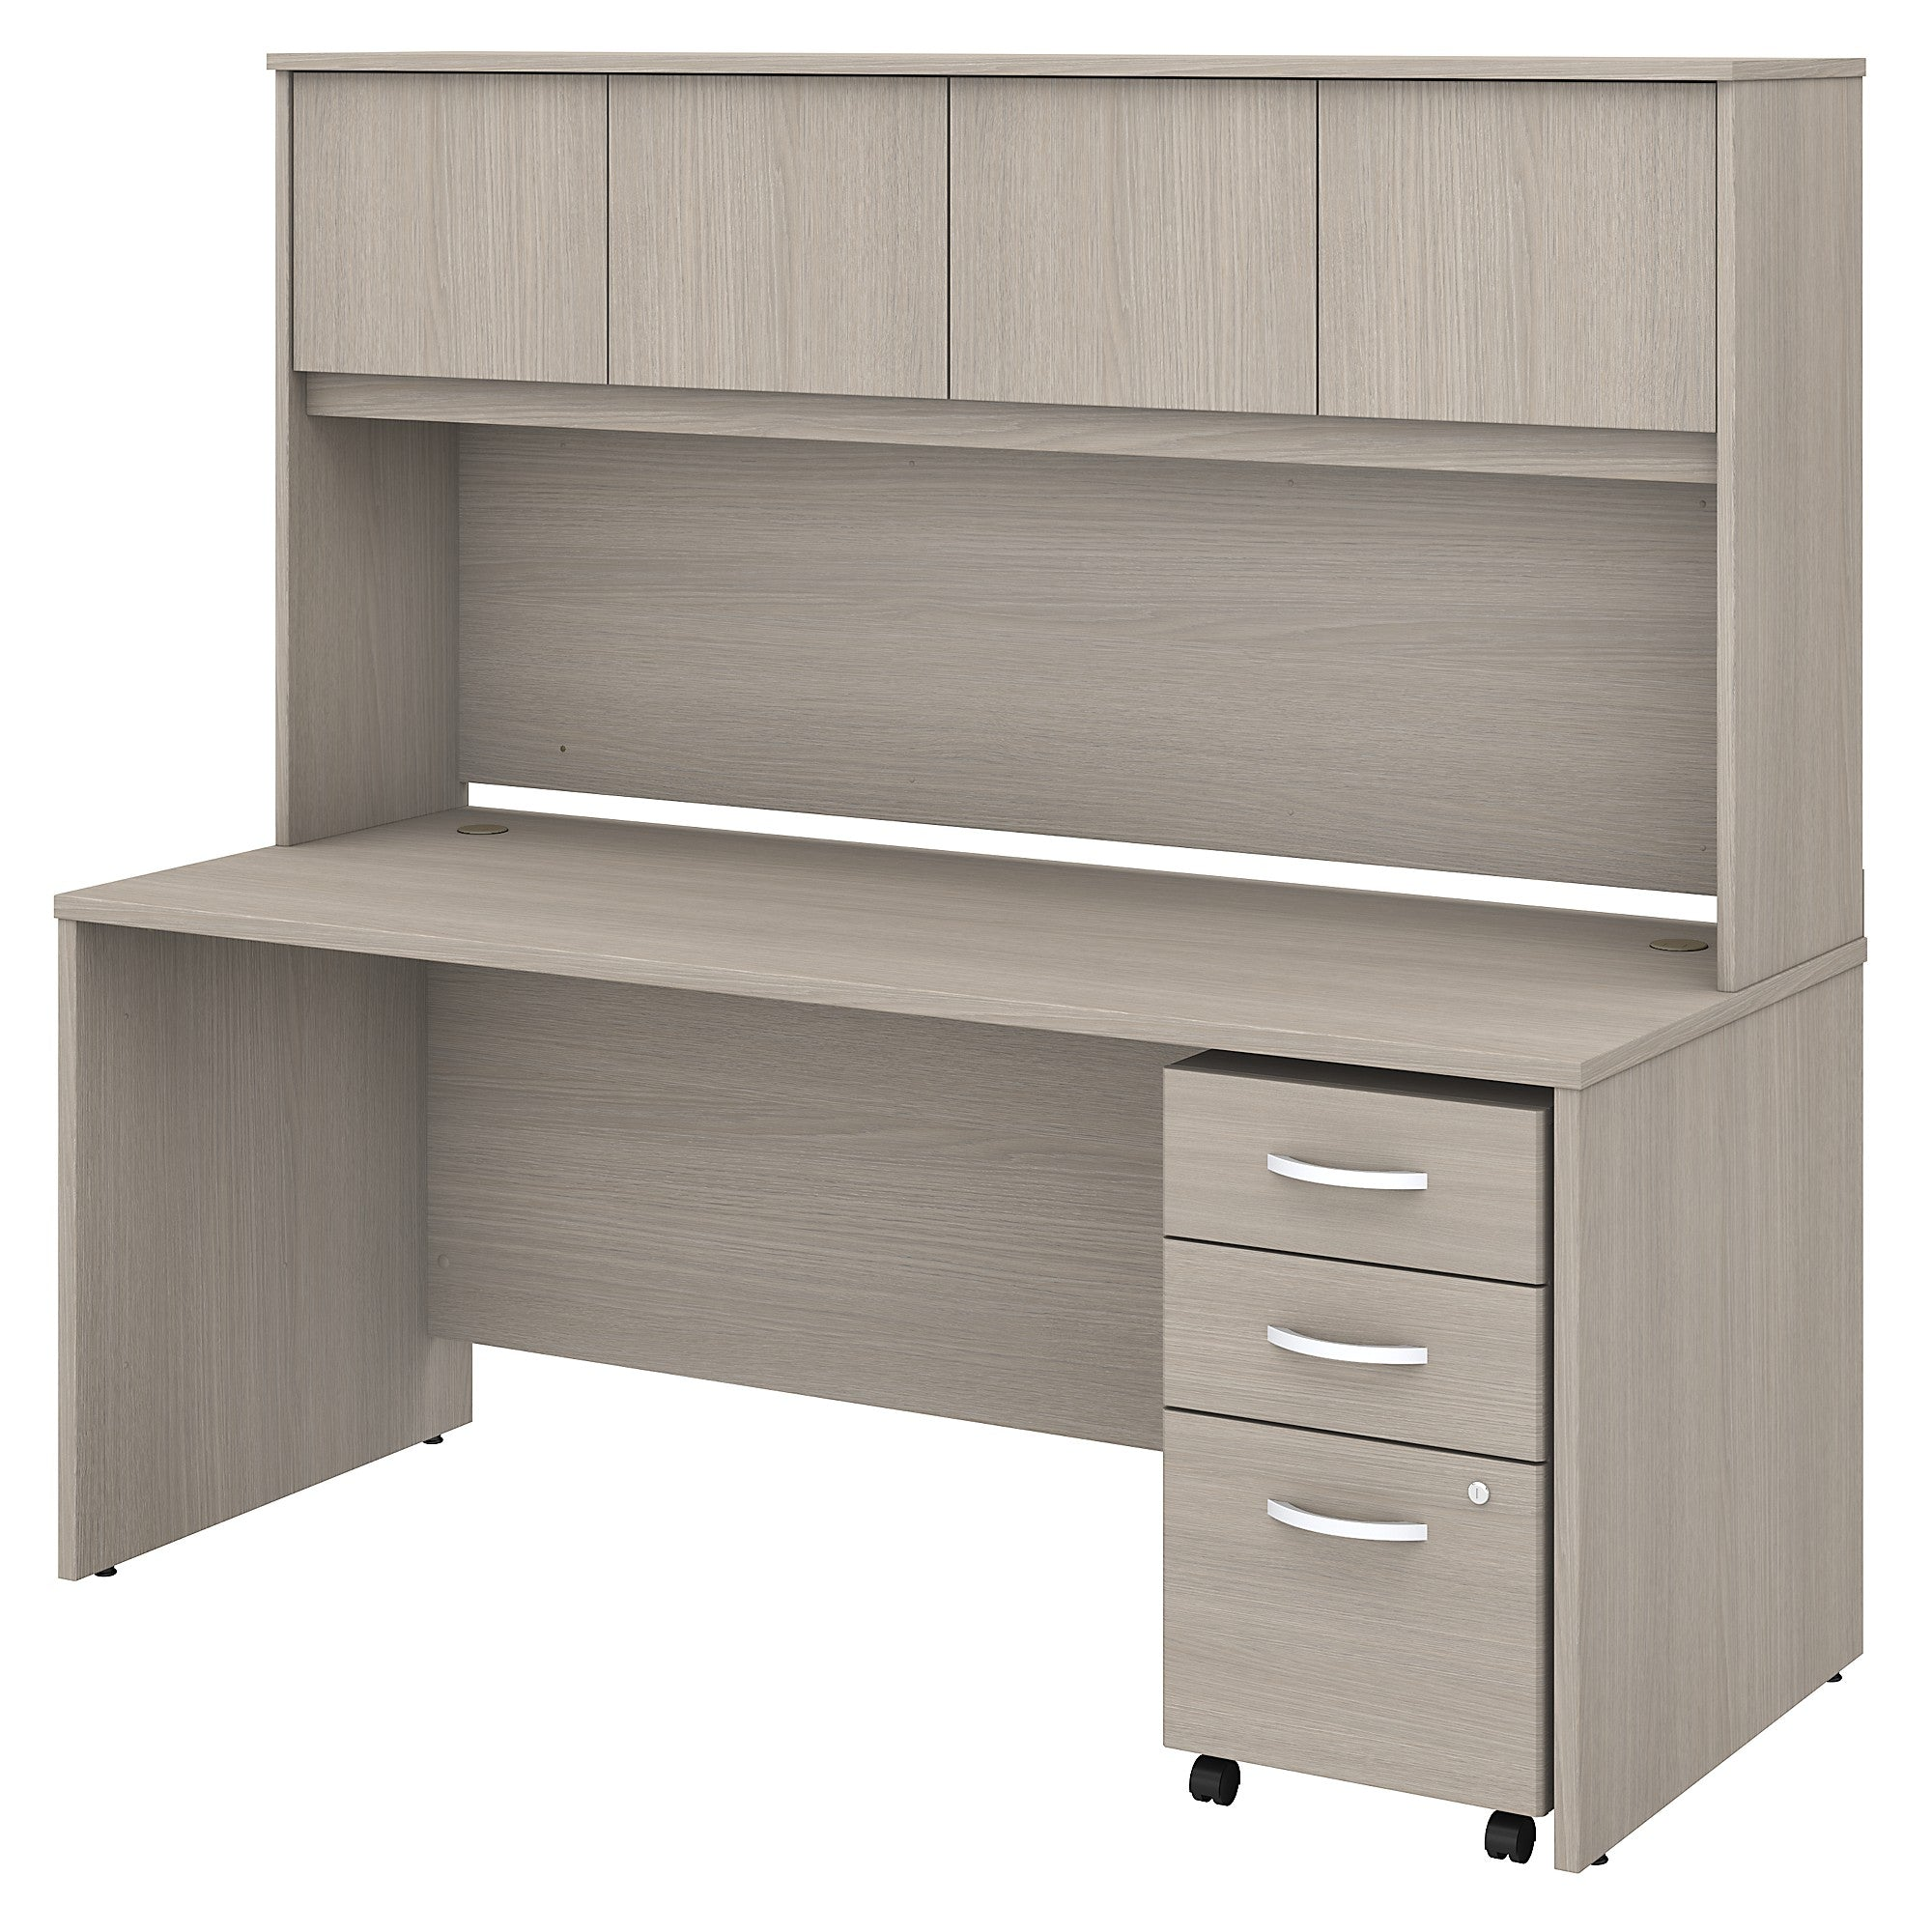 Studio C Office Desk with Hutch & Mobile File Cabinet -Sand Oak